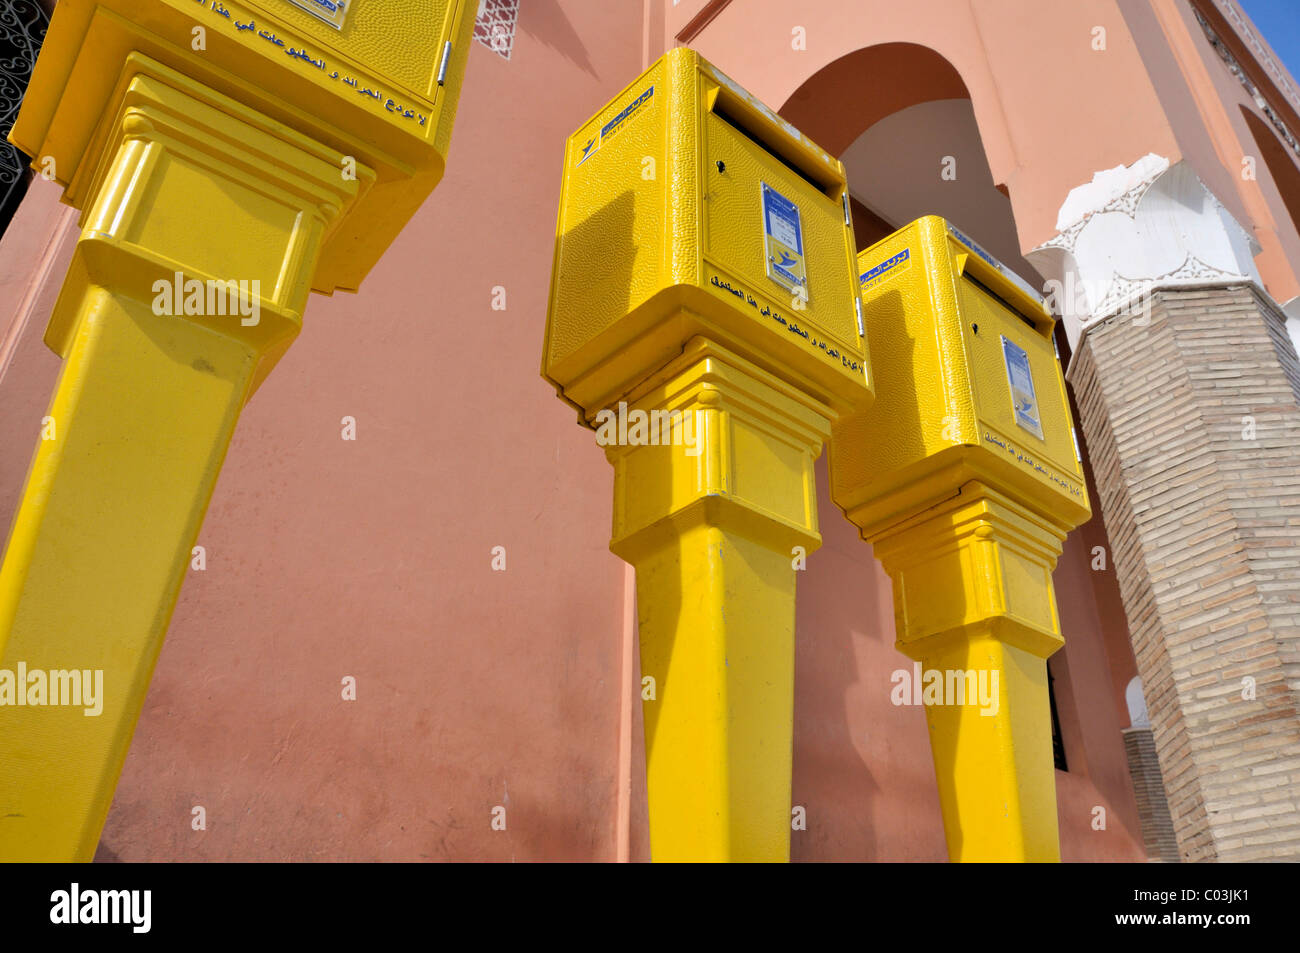 Postboxes of the Royal Moroccan Post, Poste Maroc, Marrakech, Morocco, Africa - Stock Image